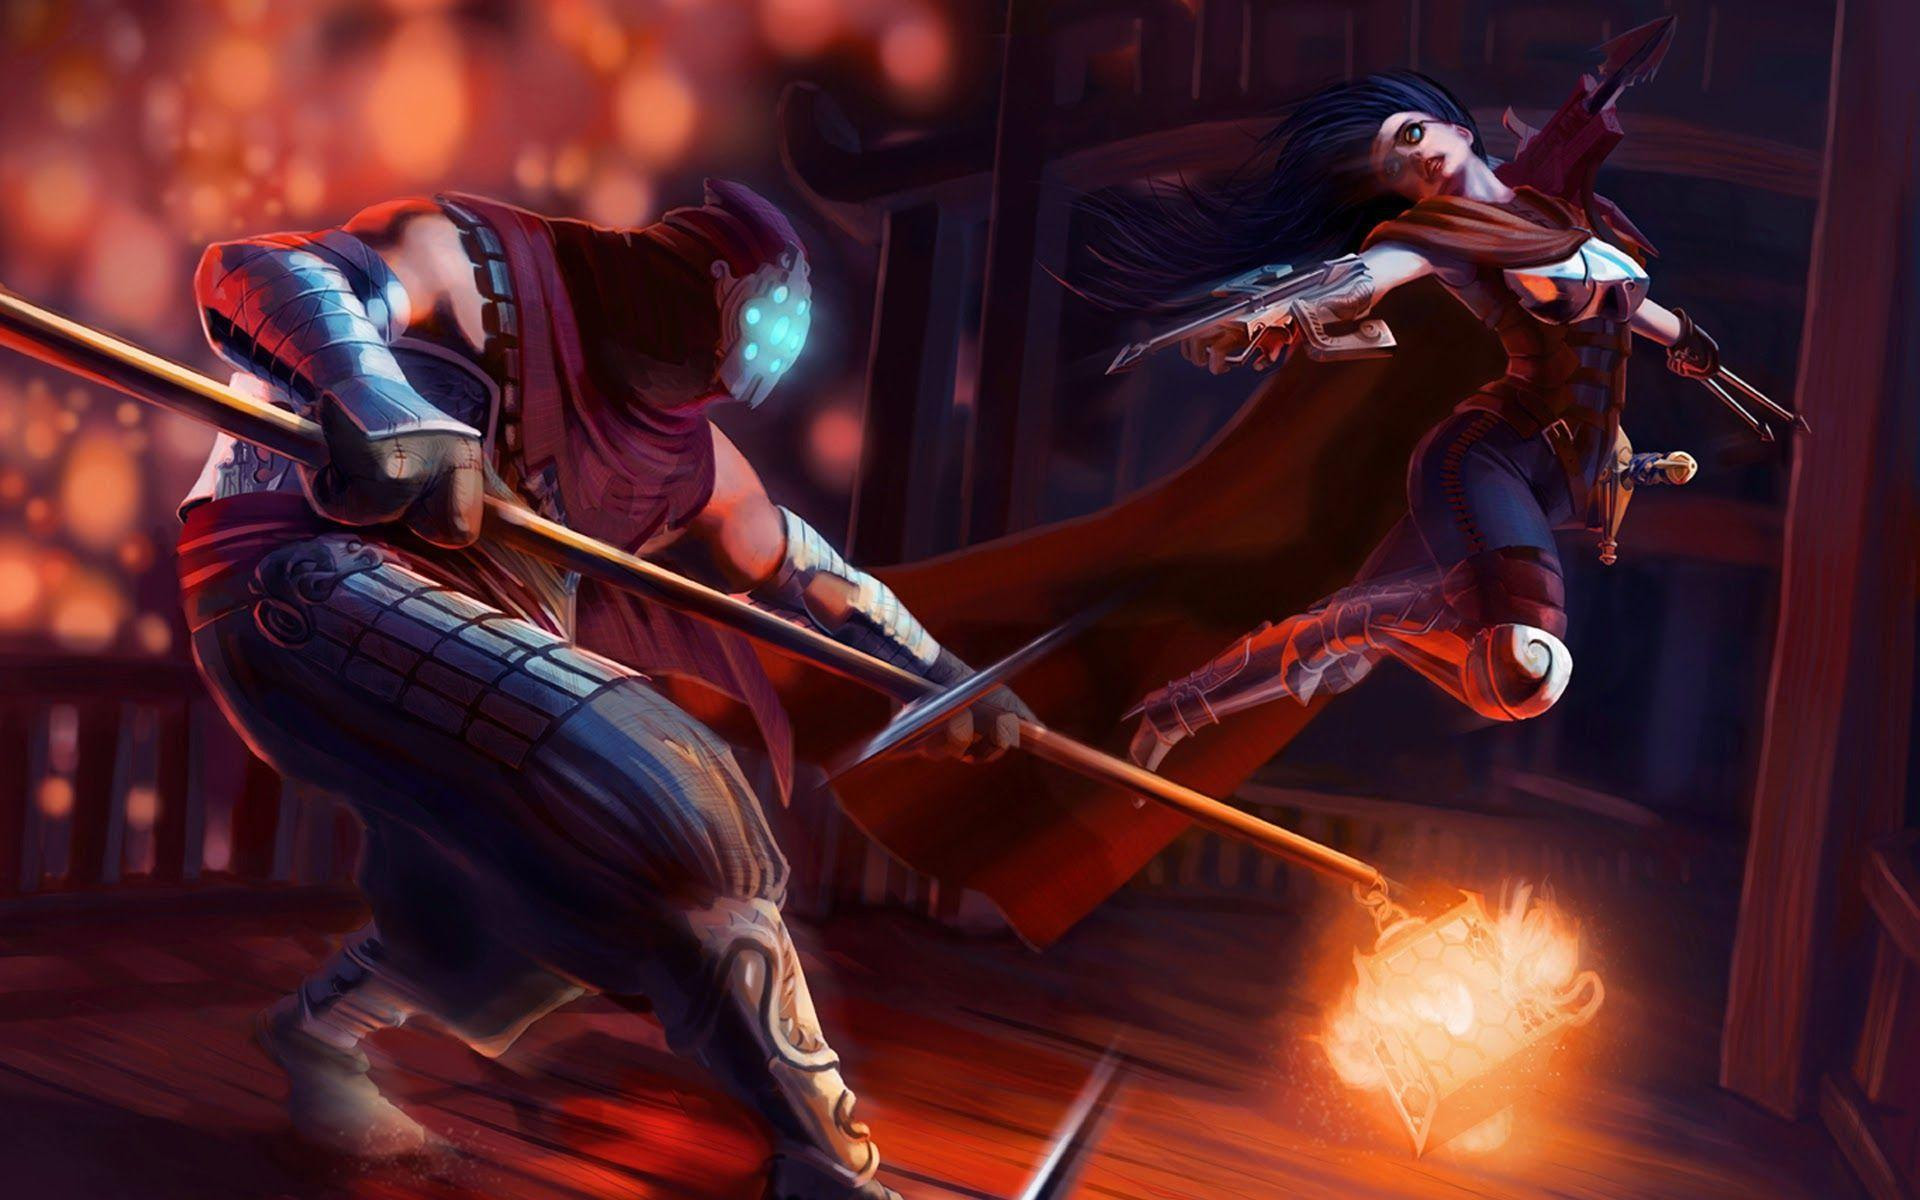 Hd Jax And Vayne Fighting League Of Legends Wallpaper Download